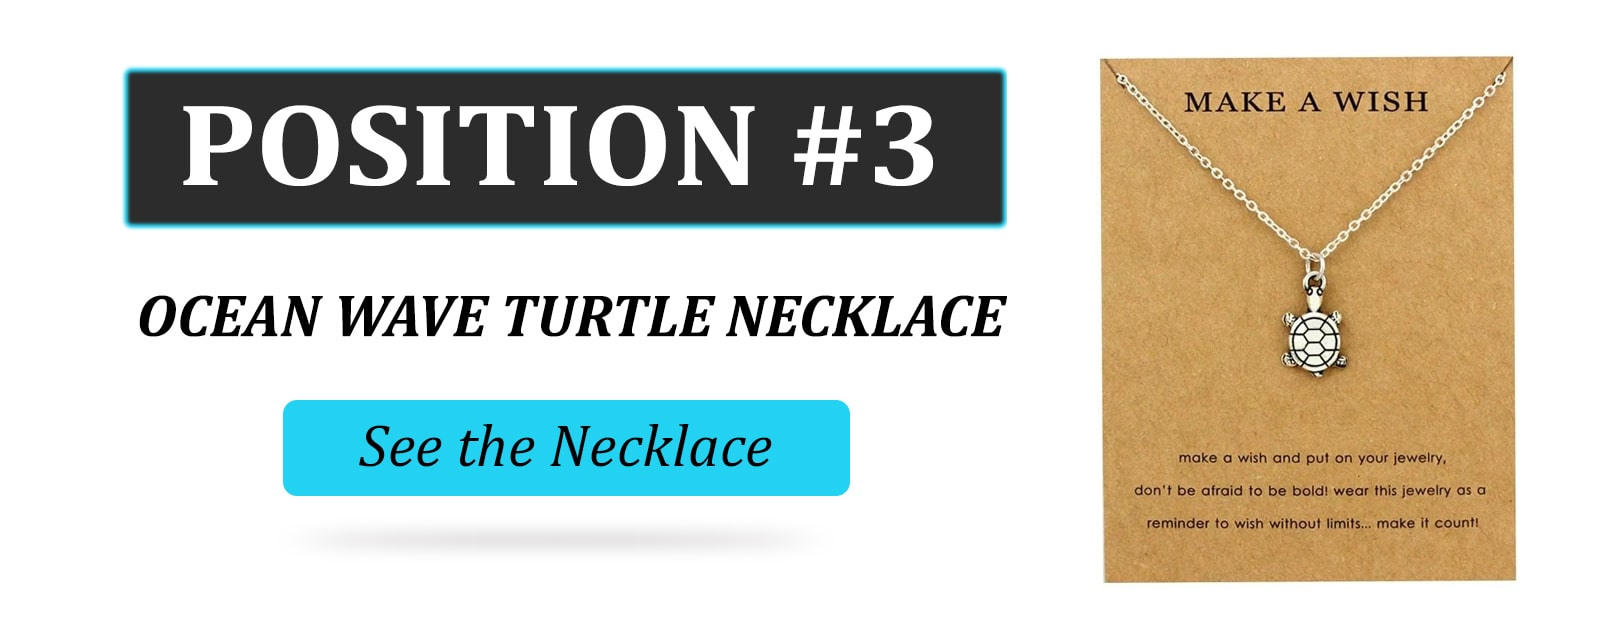 Ocean wave turtle necklace